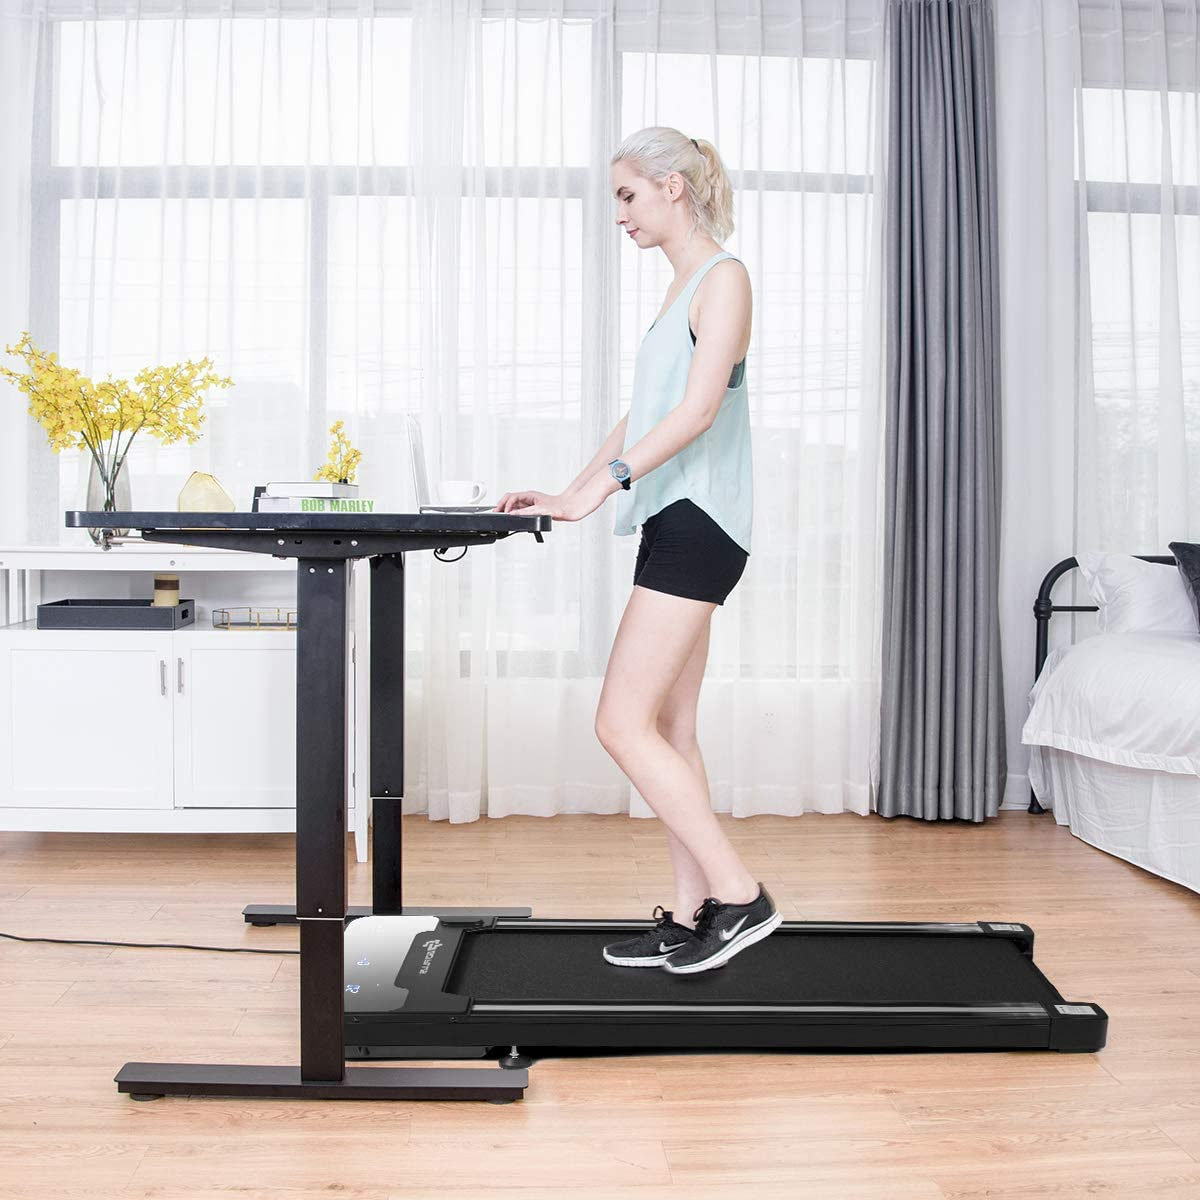 Goplus Under Desk Electric Treadmill, with Touchable LED Display Wireless Remote Control, Built-in 3 Workout Modes 12 Programs, Walking Jogging Machine for Home Office